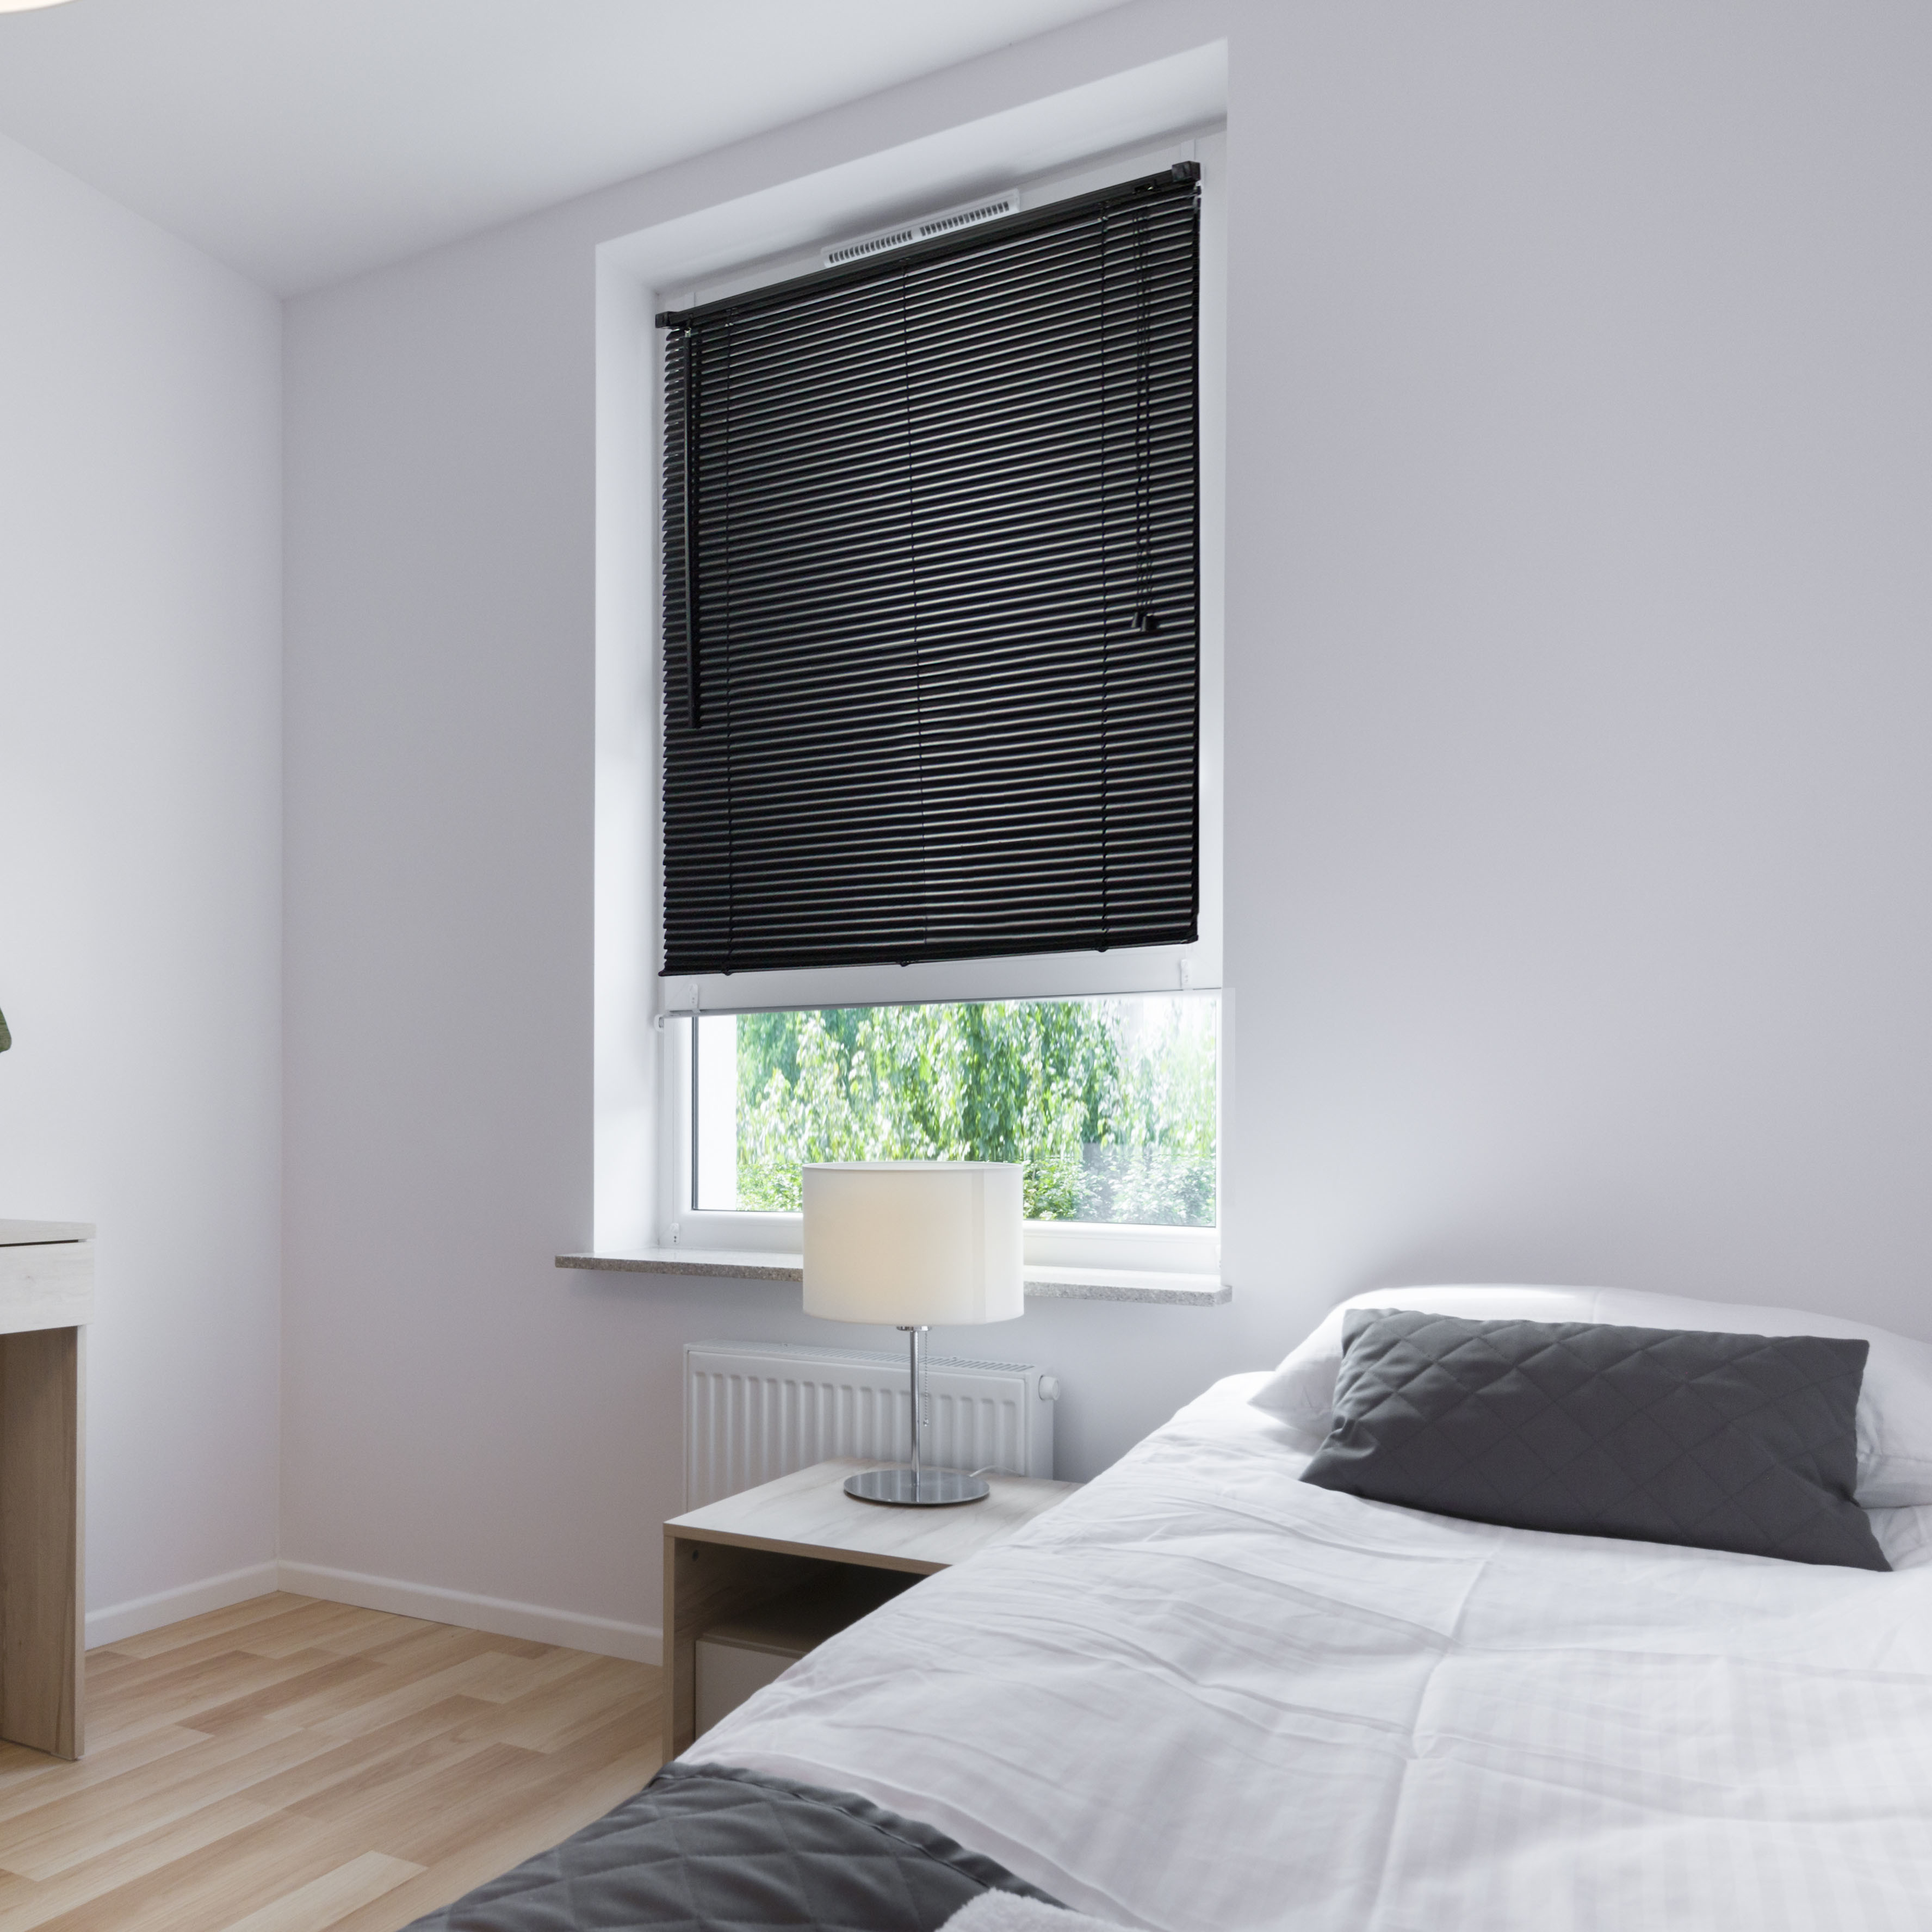 Menards Window Blinds | Menards Application | Telephone Number for Menards